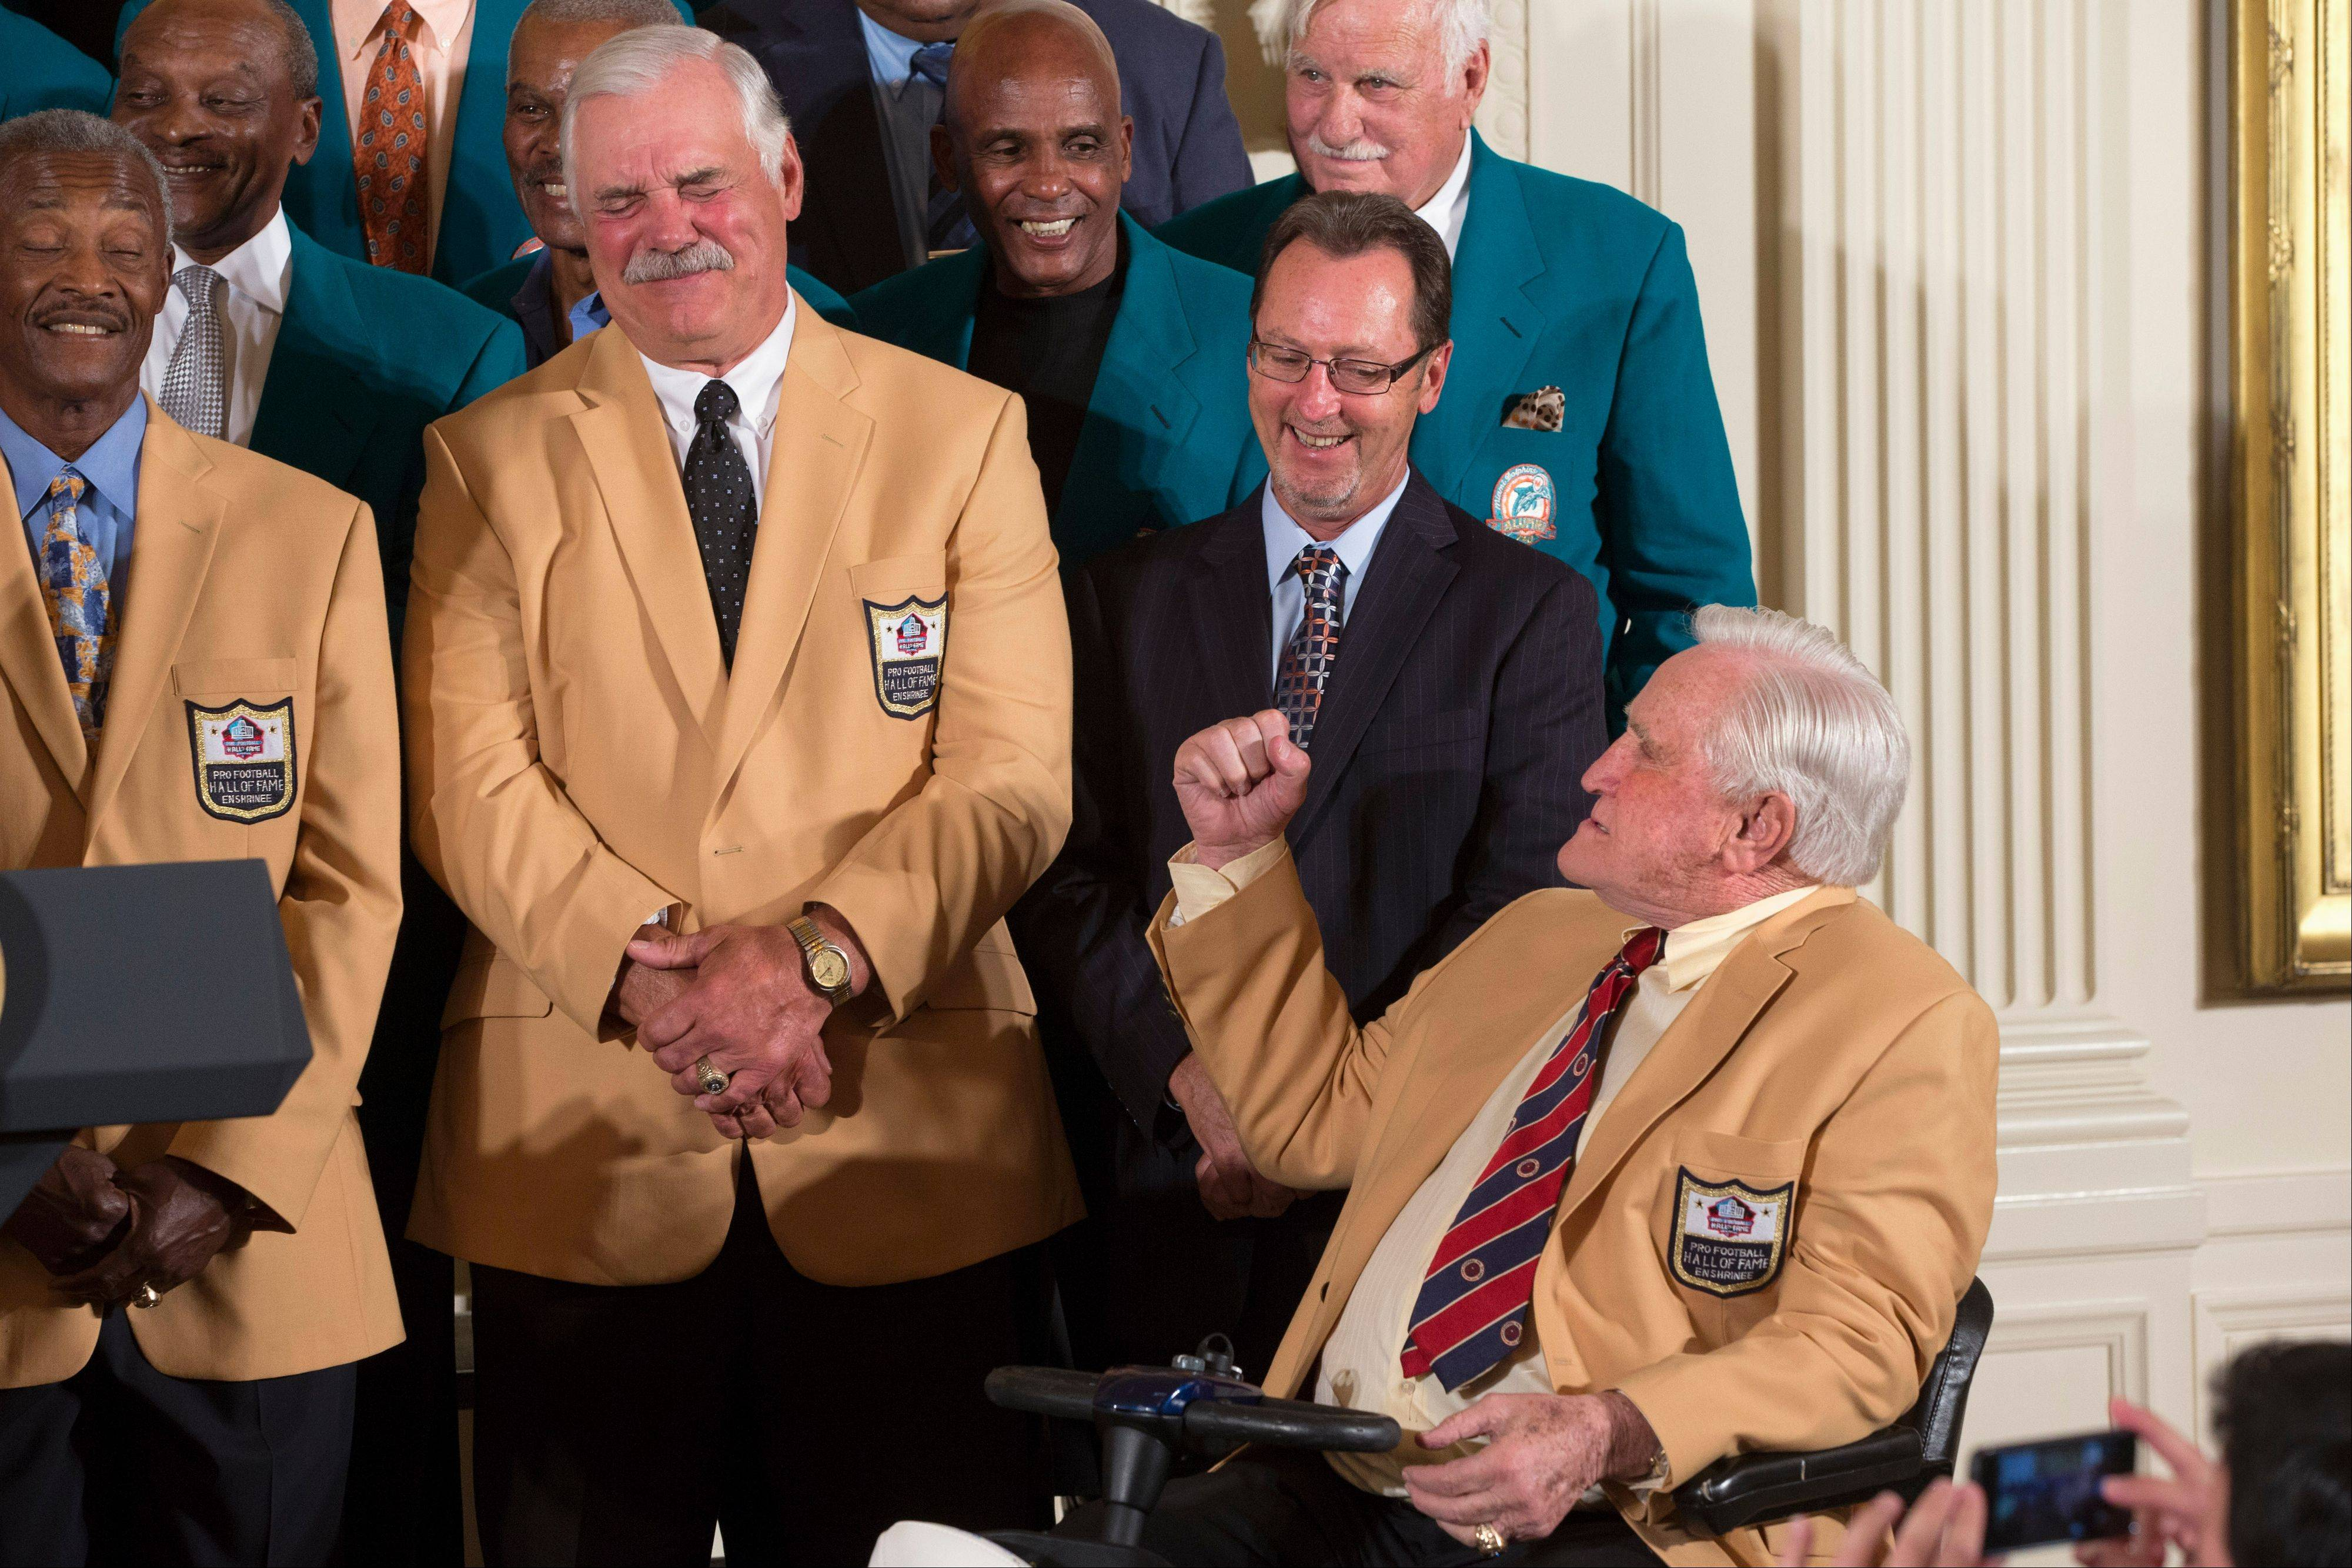 Former Miami Dolphins fullback Larry Csonka, second from left, grimaces as Hall of Fame coach Don Shula jokingly shakes a fist at him Tuesday during a ceremony in the East Room of the White House.